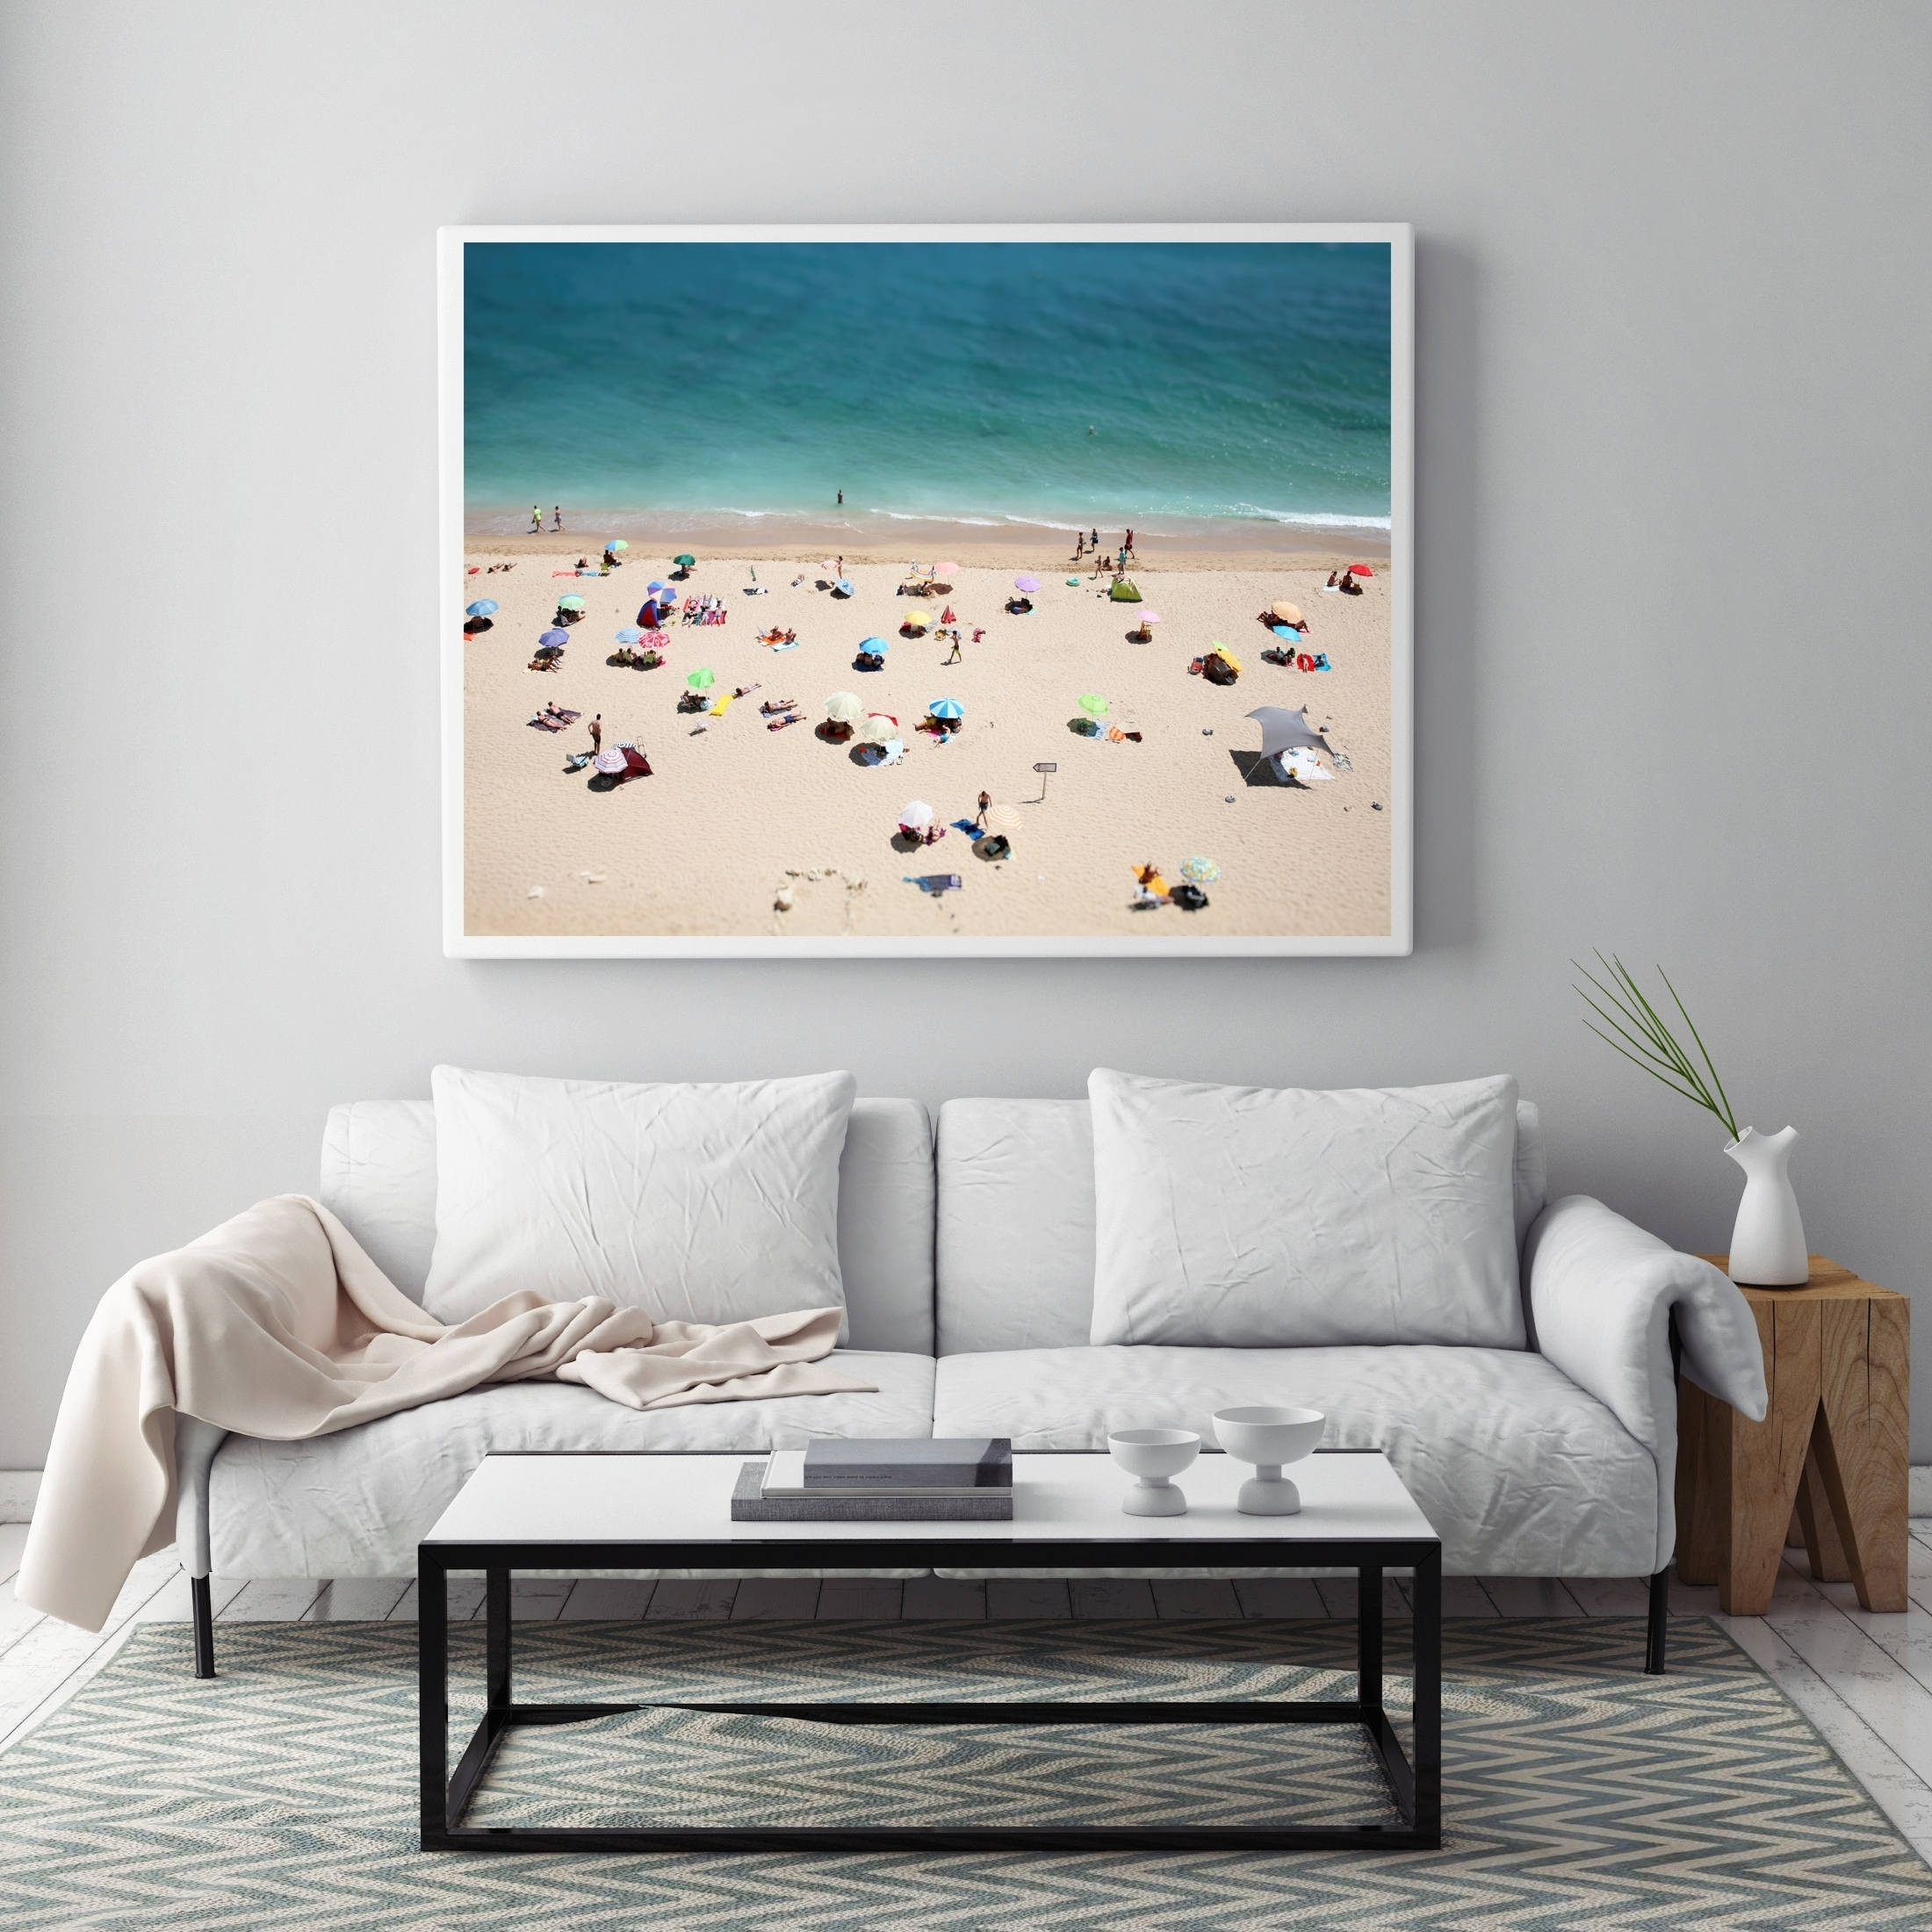 Widely Used Large Coastal Wall Art Intended For 31 Best Of Large Coastal Wall Art (View 15 of 15)